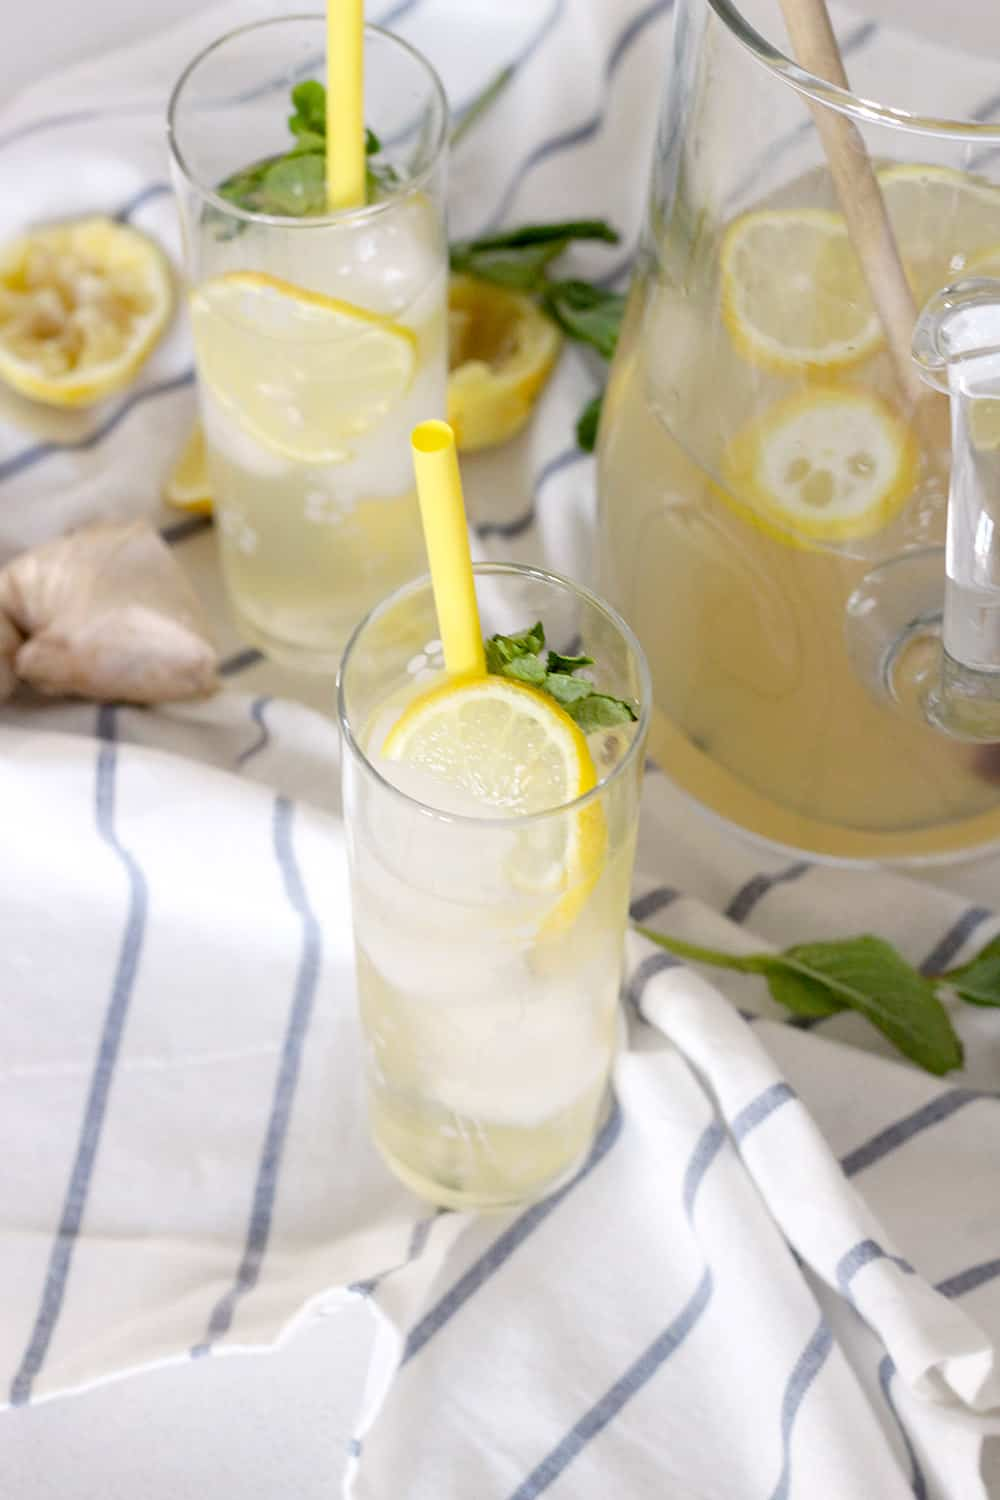 This iced ginger honey lemon tea is super healthy, delicious, and refreshing. Ginger, honey, and lemon all have medicinal qualities- it's great for a queasy stomach, better digestion, or just for a healthy sweet delicious treat!